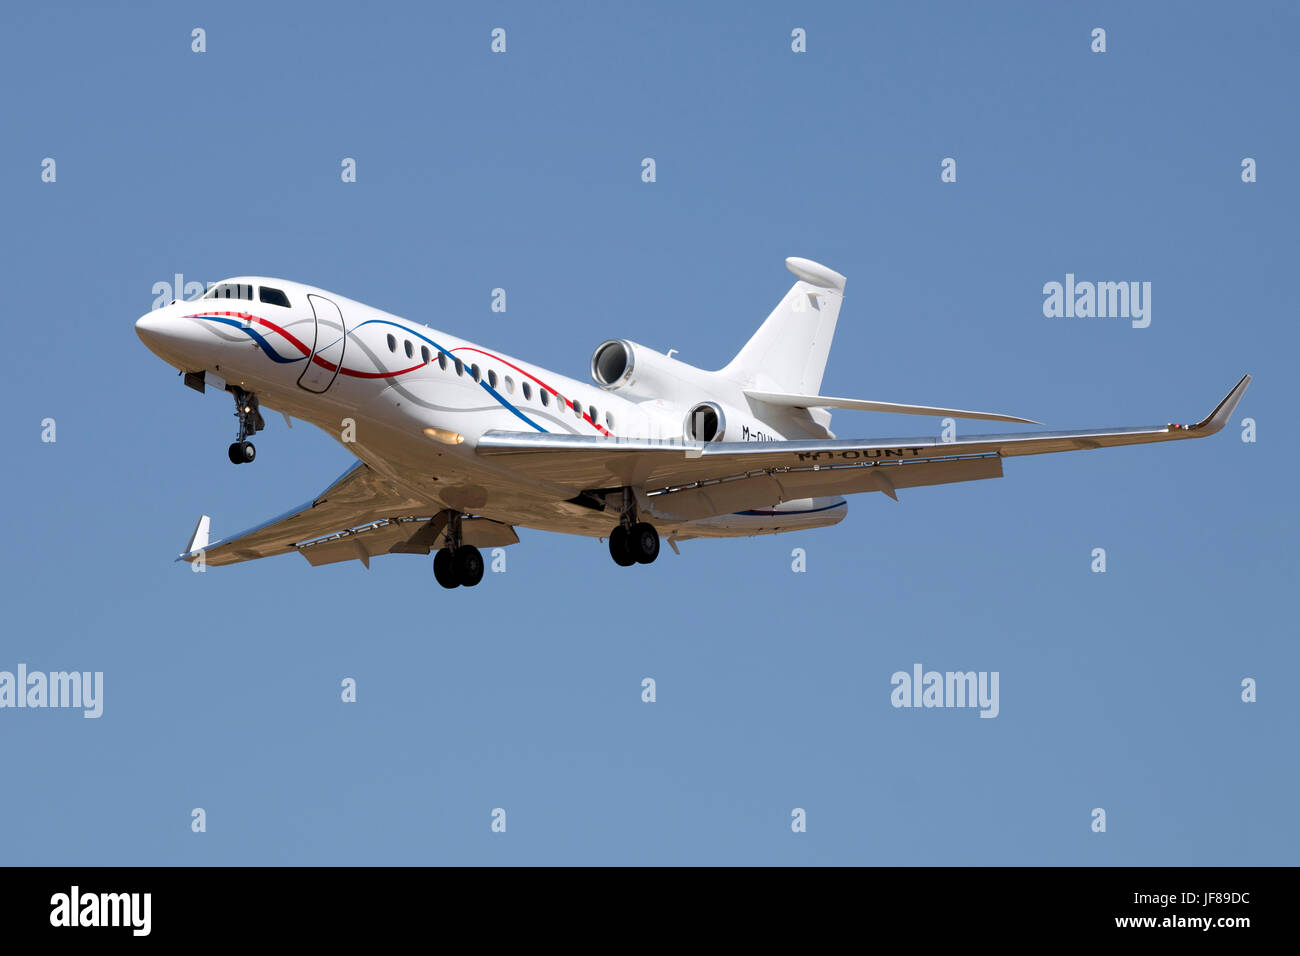 A private Dassault Falcon 7X [M-OUNT] on final approach runway 31. - Stock Image